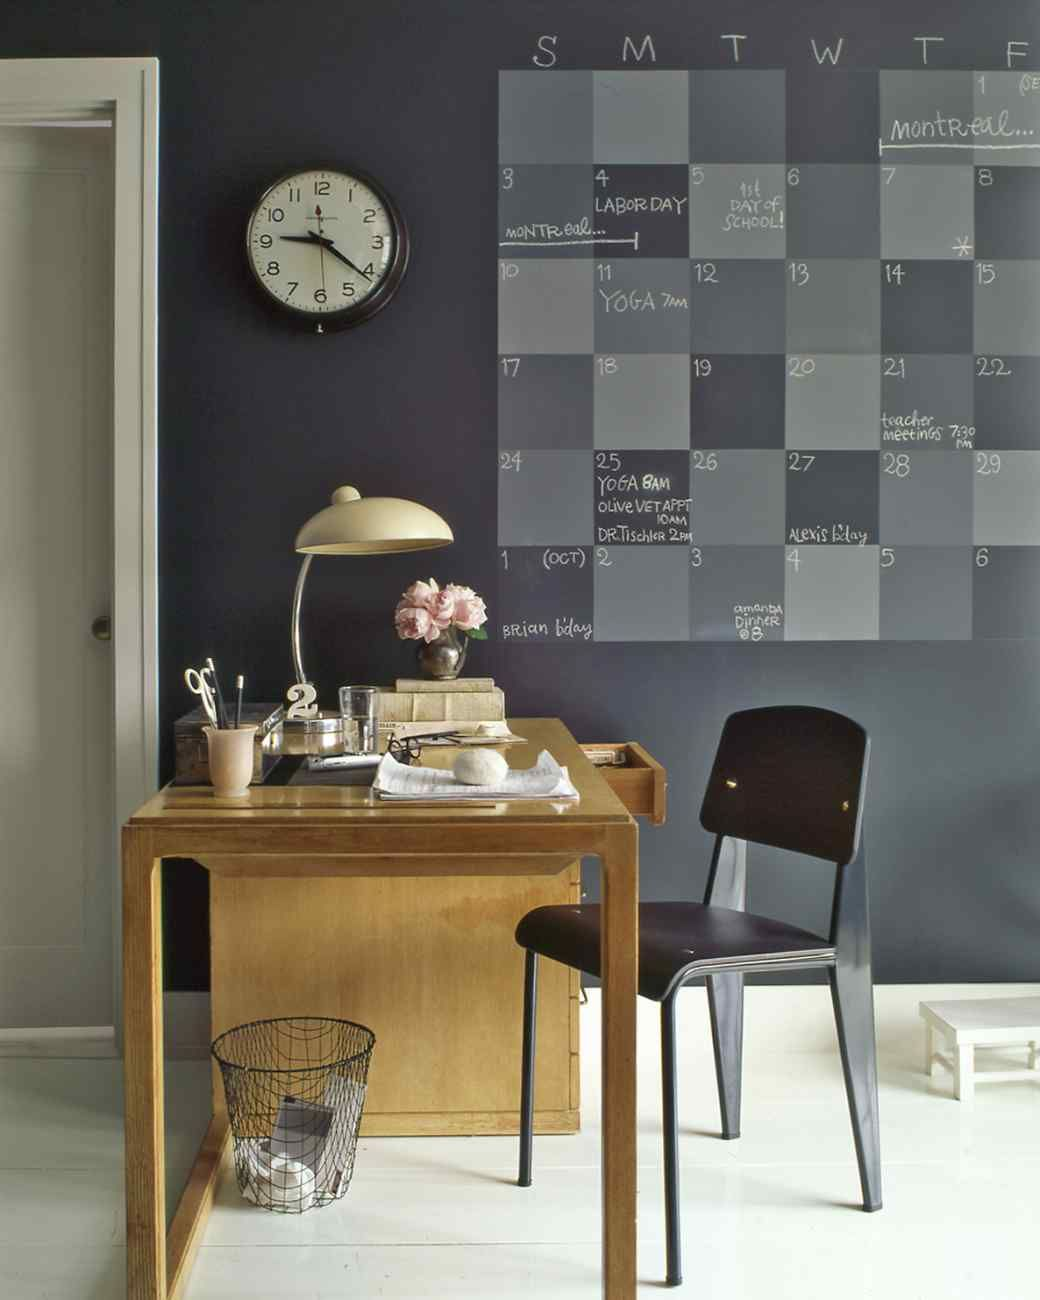 How to make chalkboard paint: http://www.marthastewart.com/271574/custom-color-chalkboard-paint